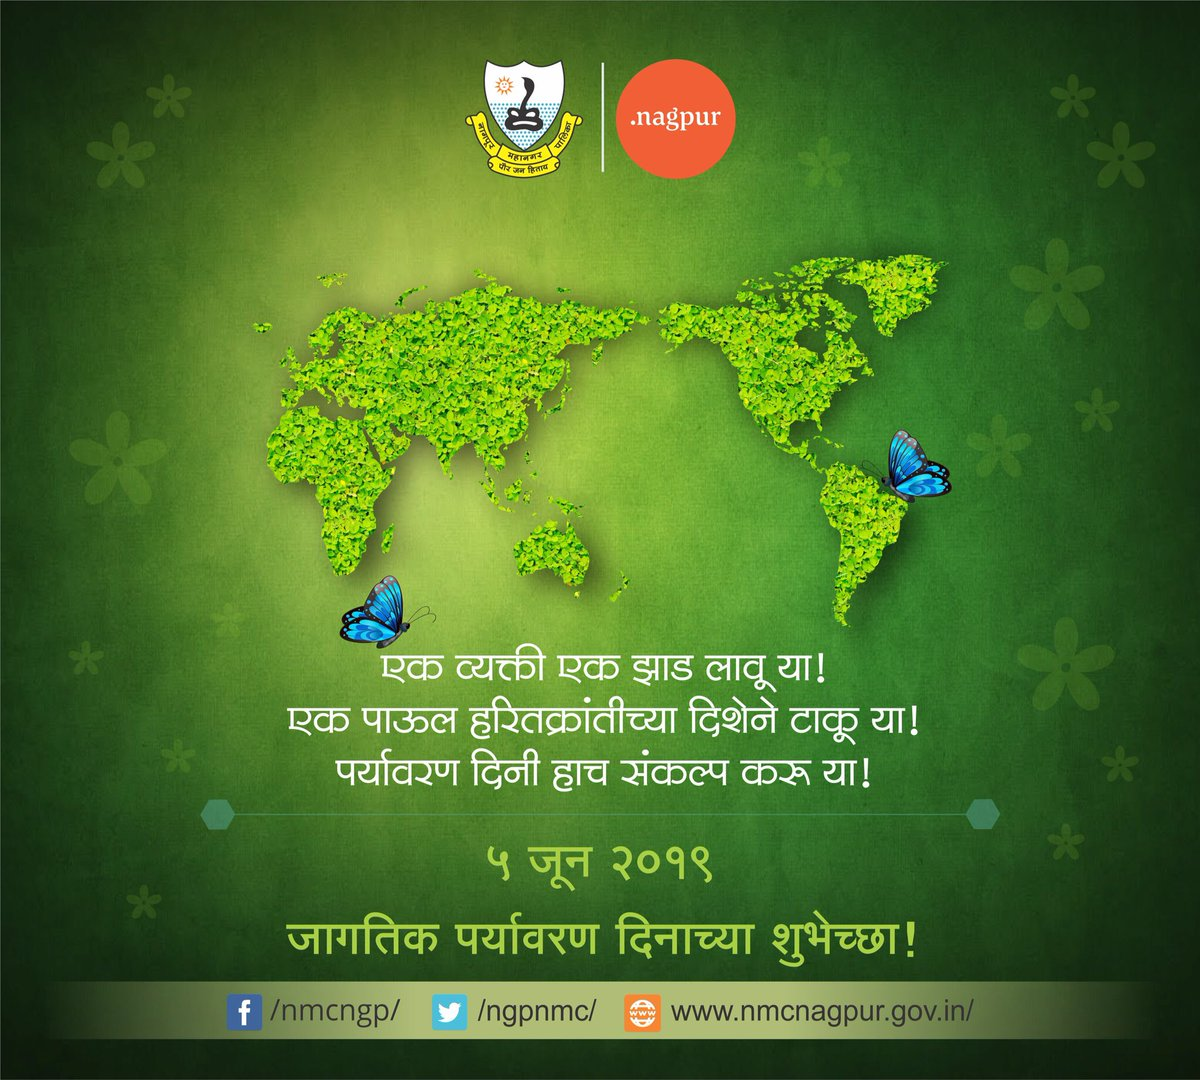 On this World Environment Day, let us pledge to keep our Mother Earth clean & green...!